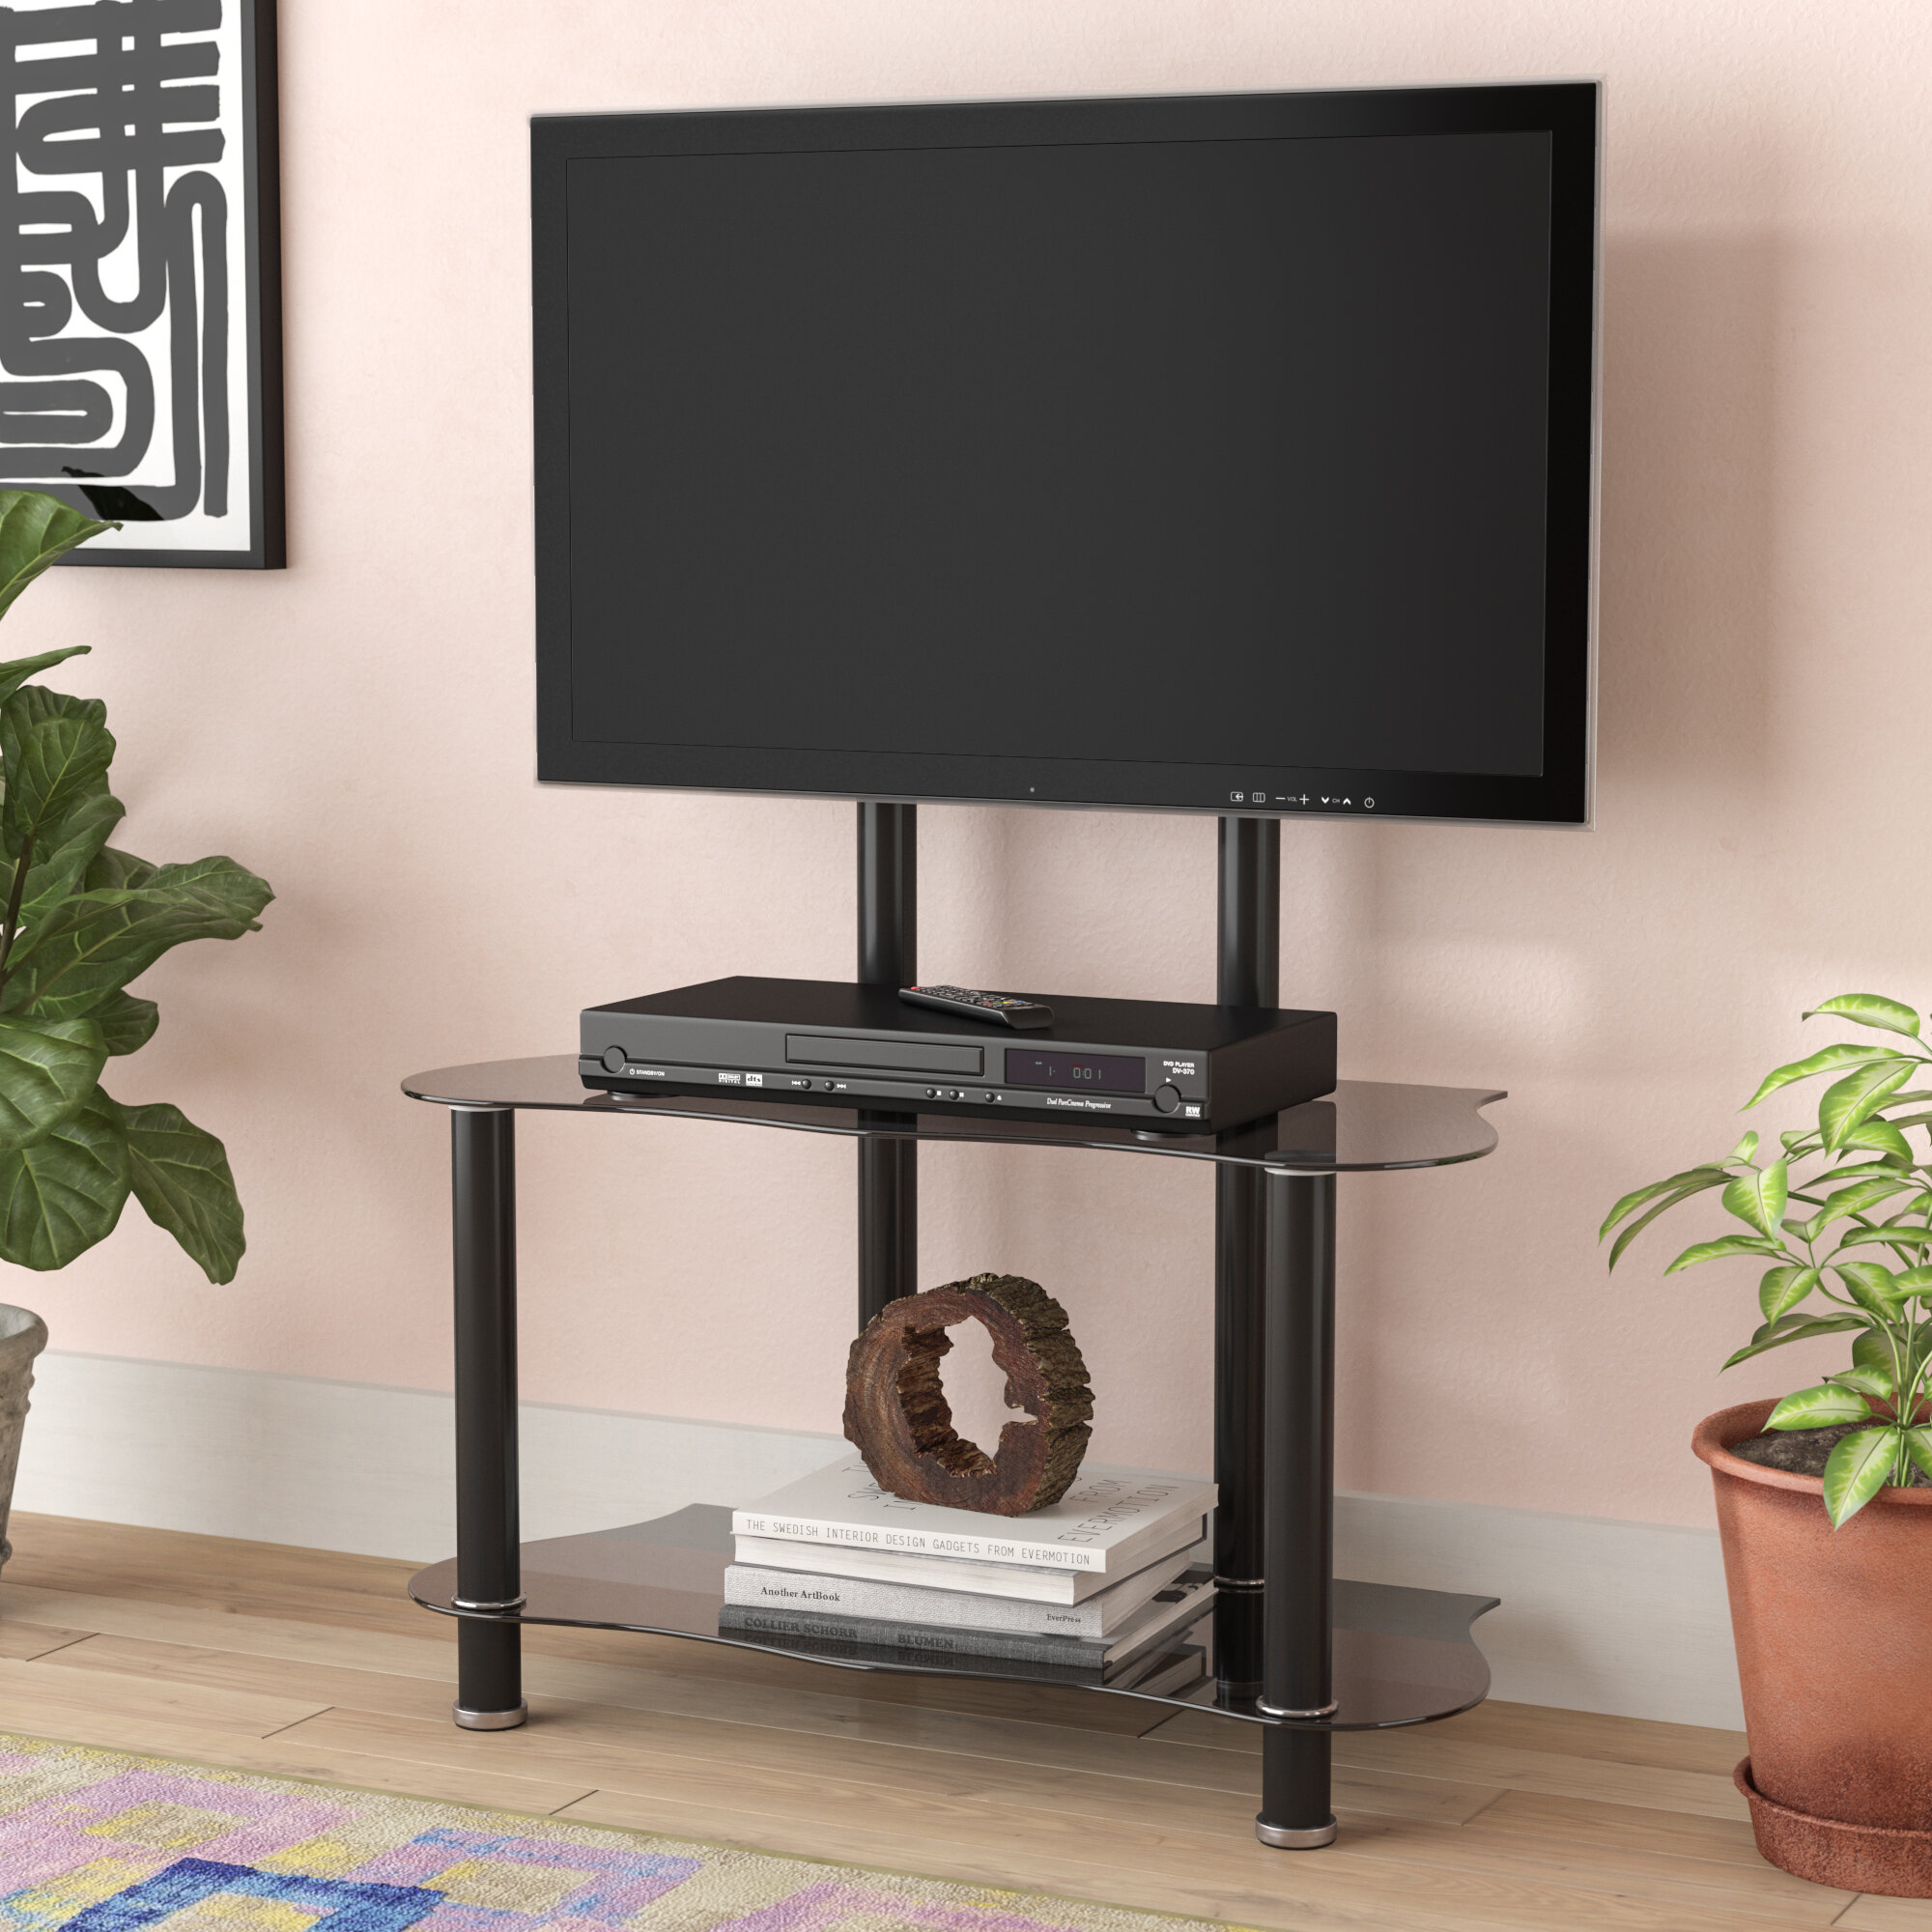 Ebern Designs Chantal Tv Stand For Tvs Up To 32 Reviews Wayfair